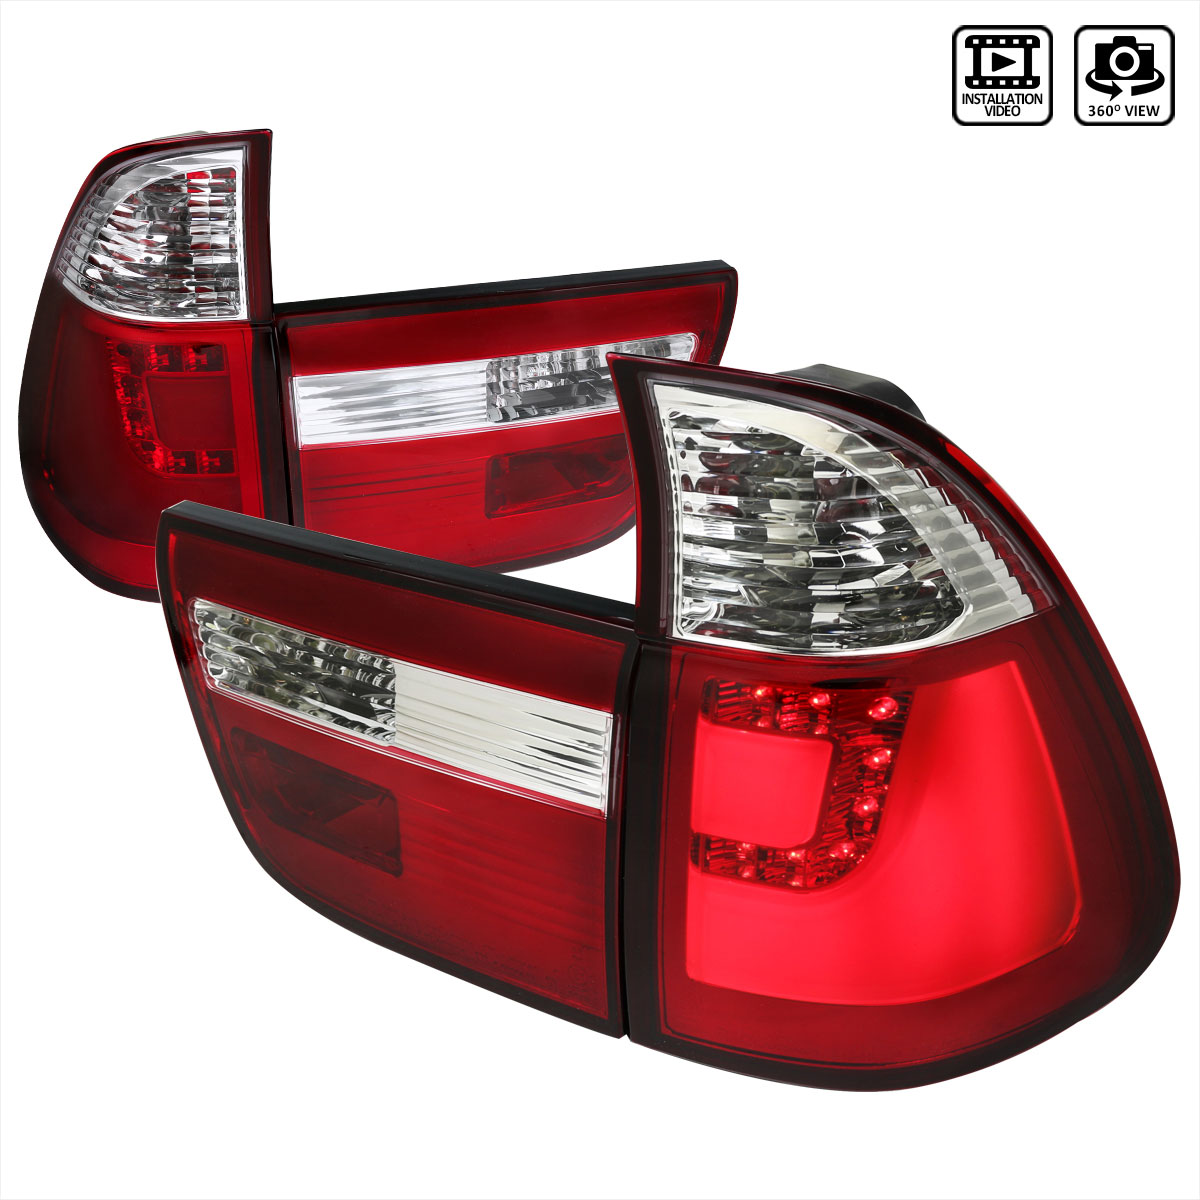 Car Brands That Start With D >> Spec-D Tuning LT-X500RLED-TM | Bmw X5 Red Led Tail Lights; 2000-2006